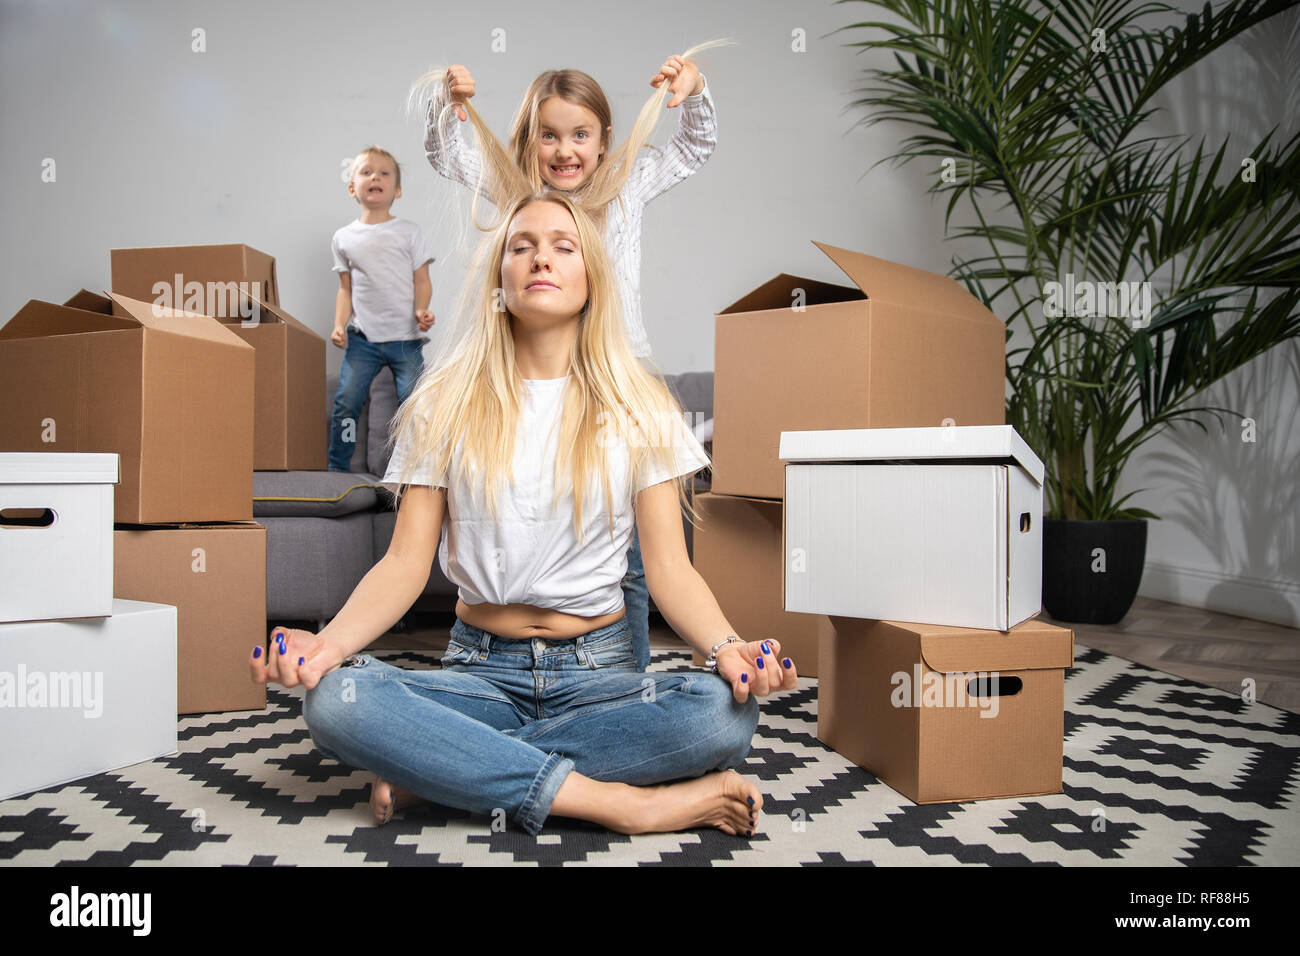 Photo of calm blonde sitting on floor among cardboard boxes and boy, girl jumping on sofa in new apartment - Stock Image